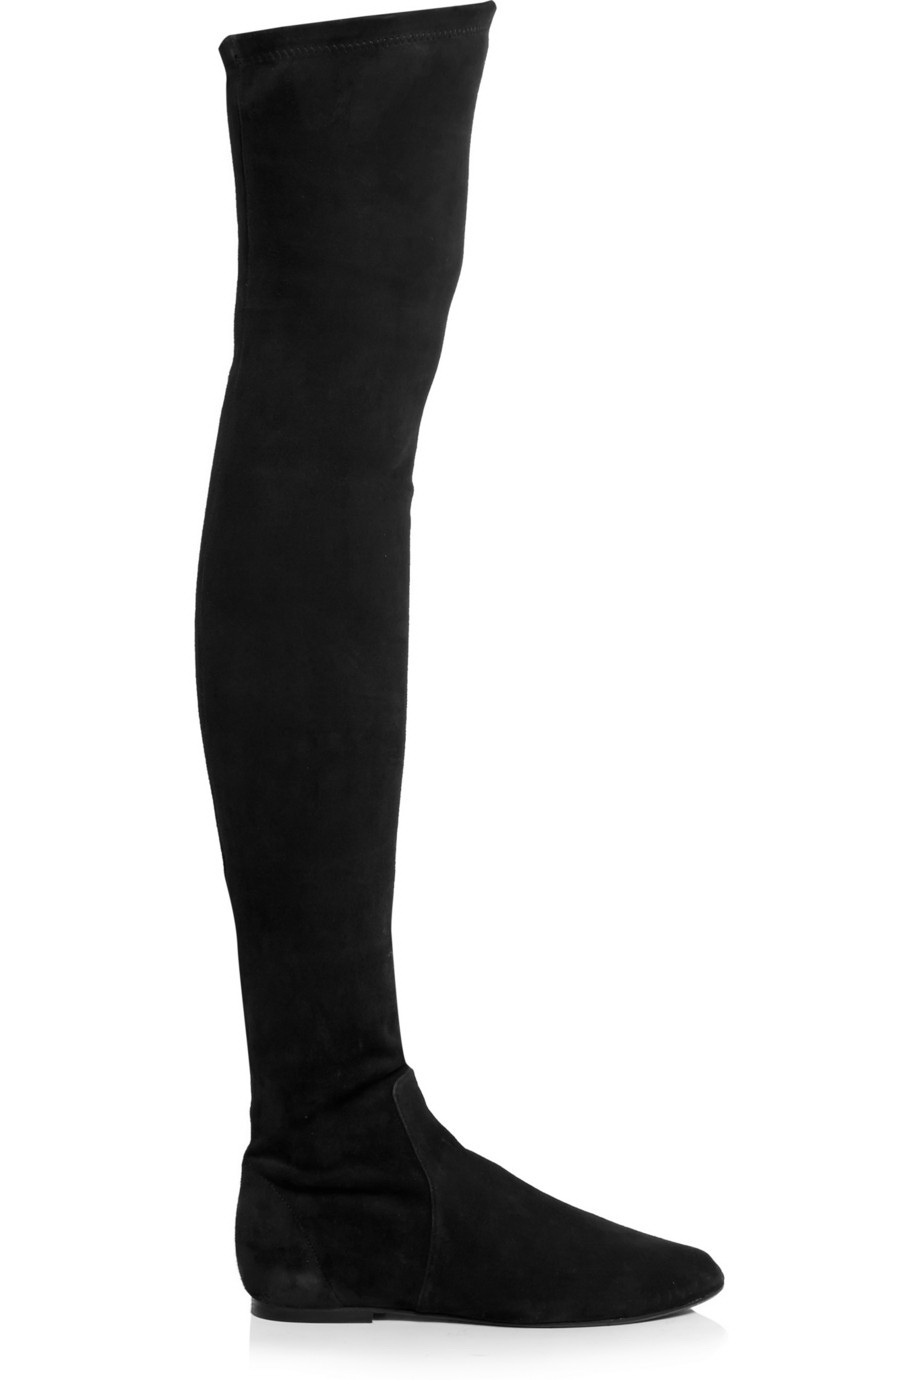 Flat Over-The-Knee Boots To Buy In 2016 2017 | Become Chic